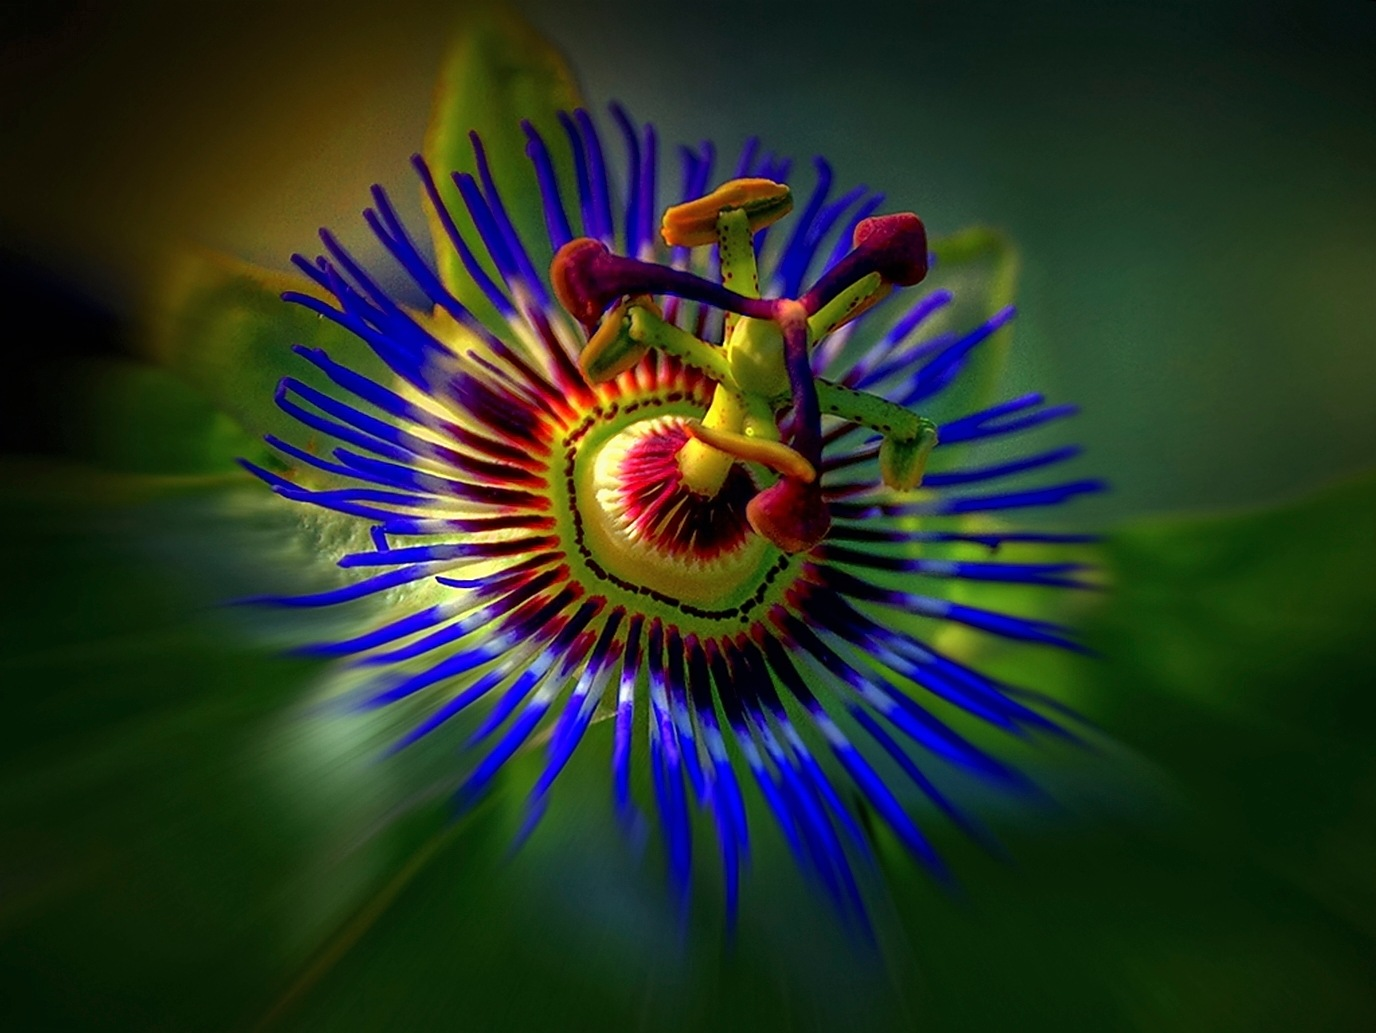 Passiflora by zbych41